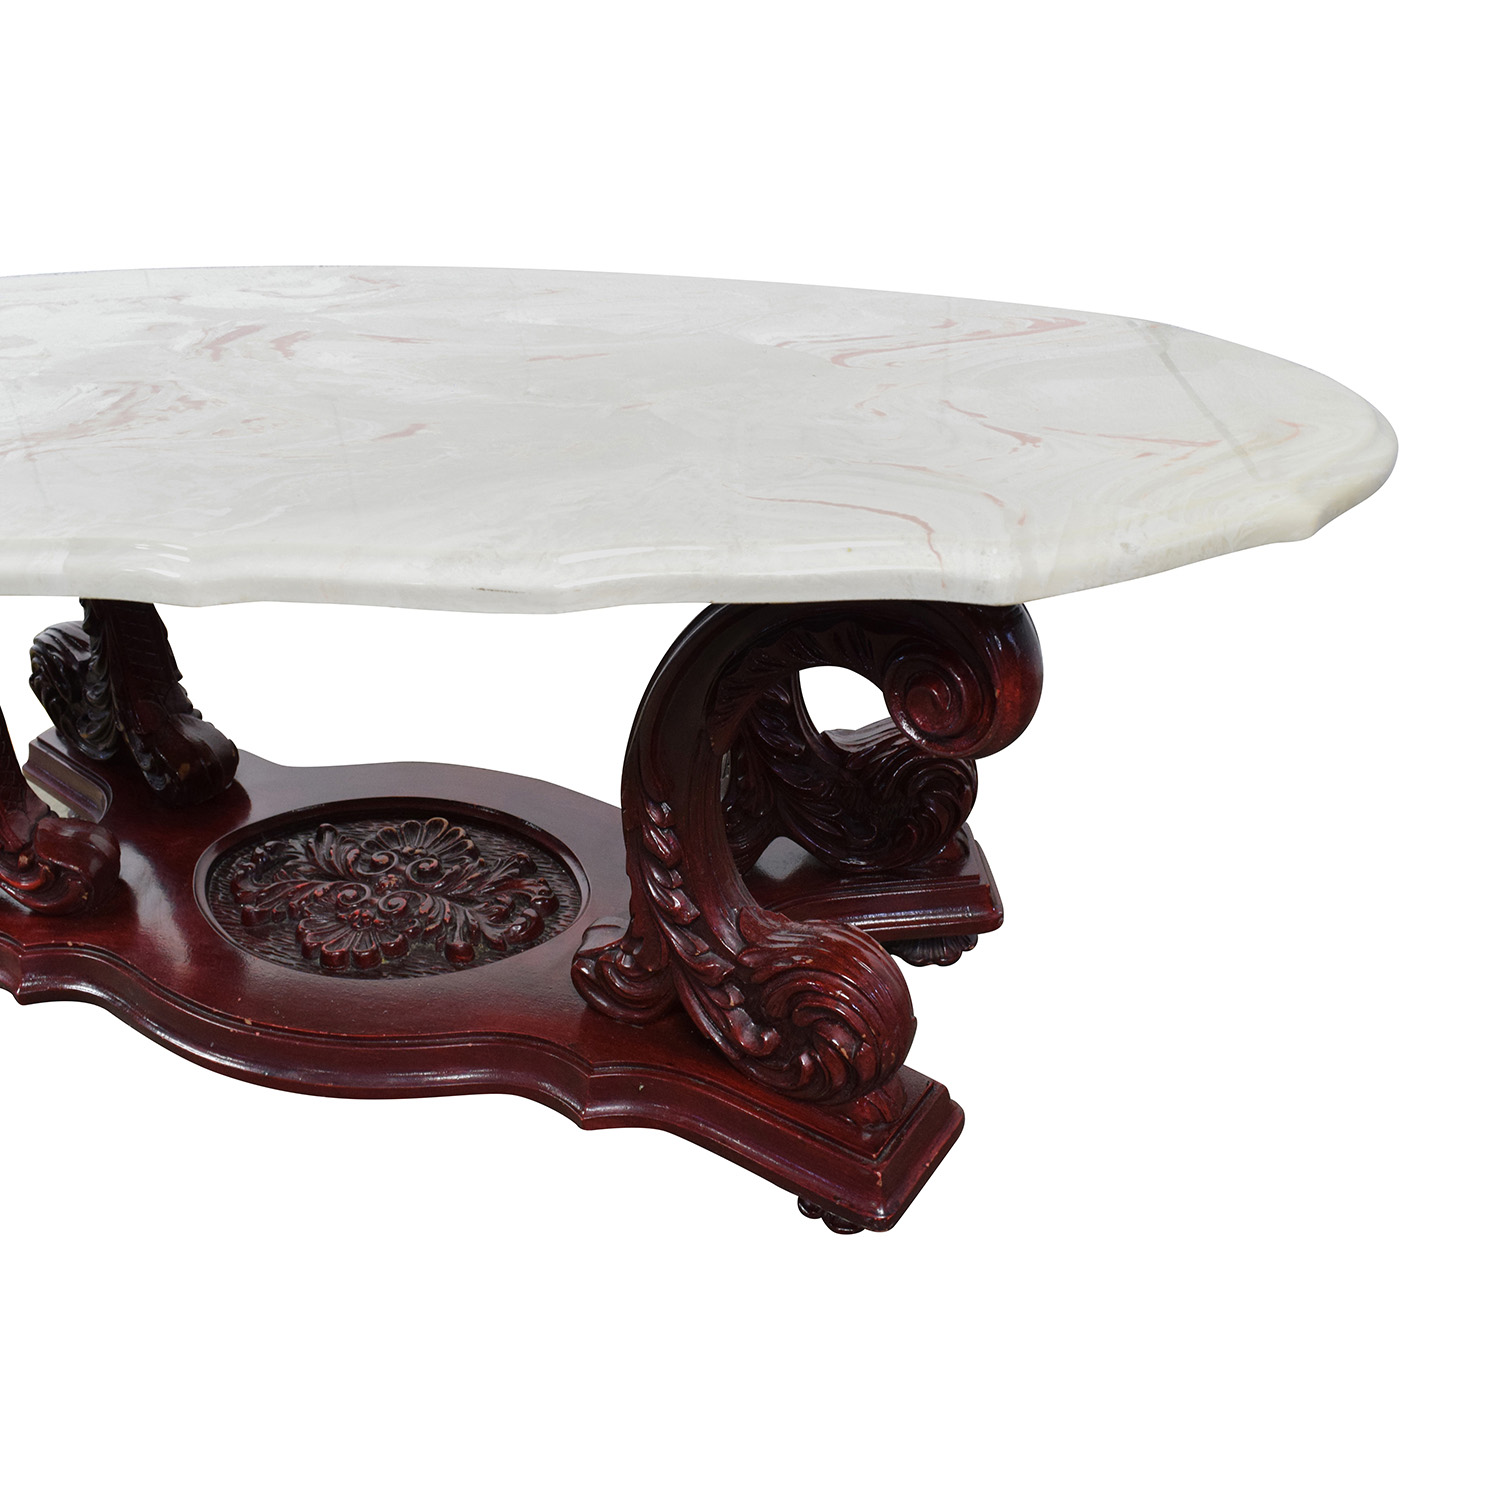 Buy Online Marble Top Coffee Table: Marble Top Coffee Table With Burgundy Carved